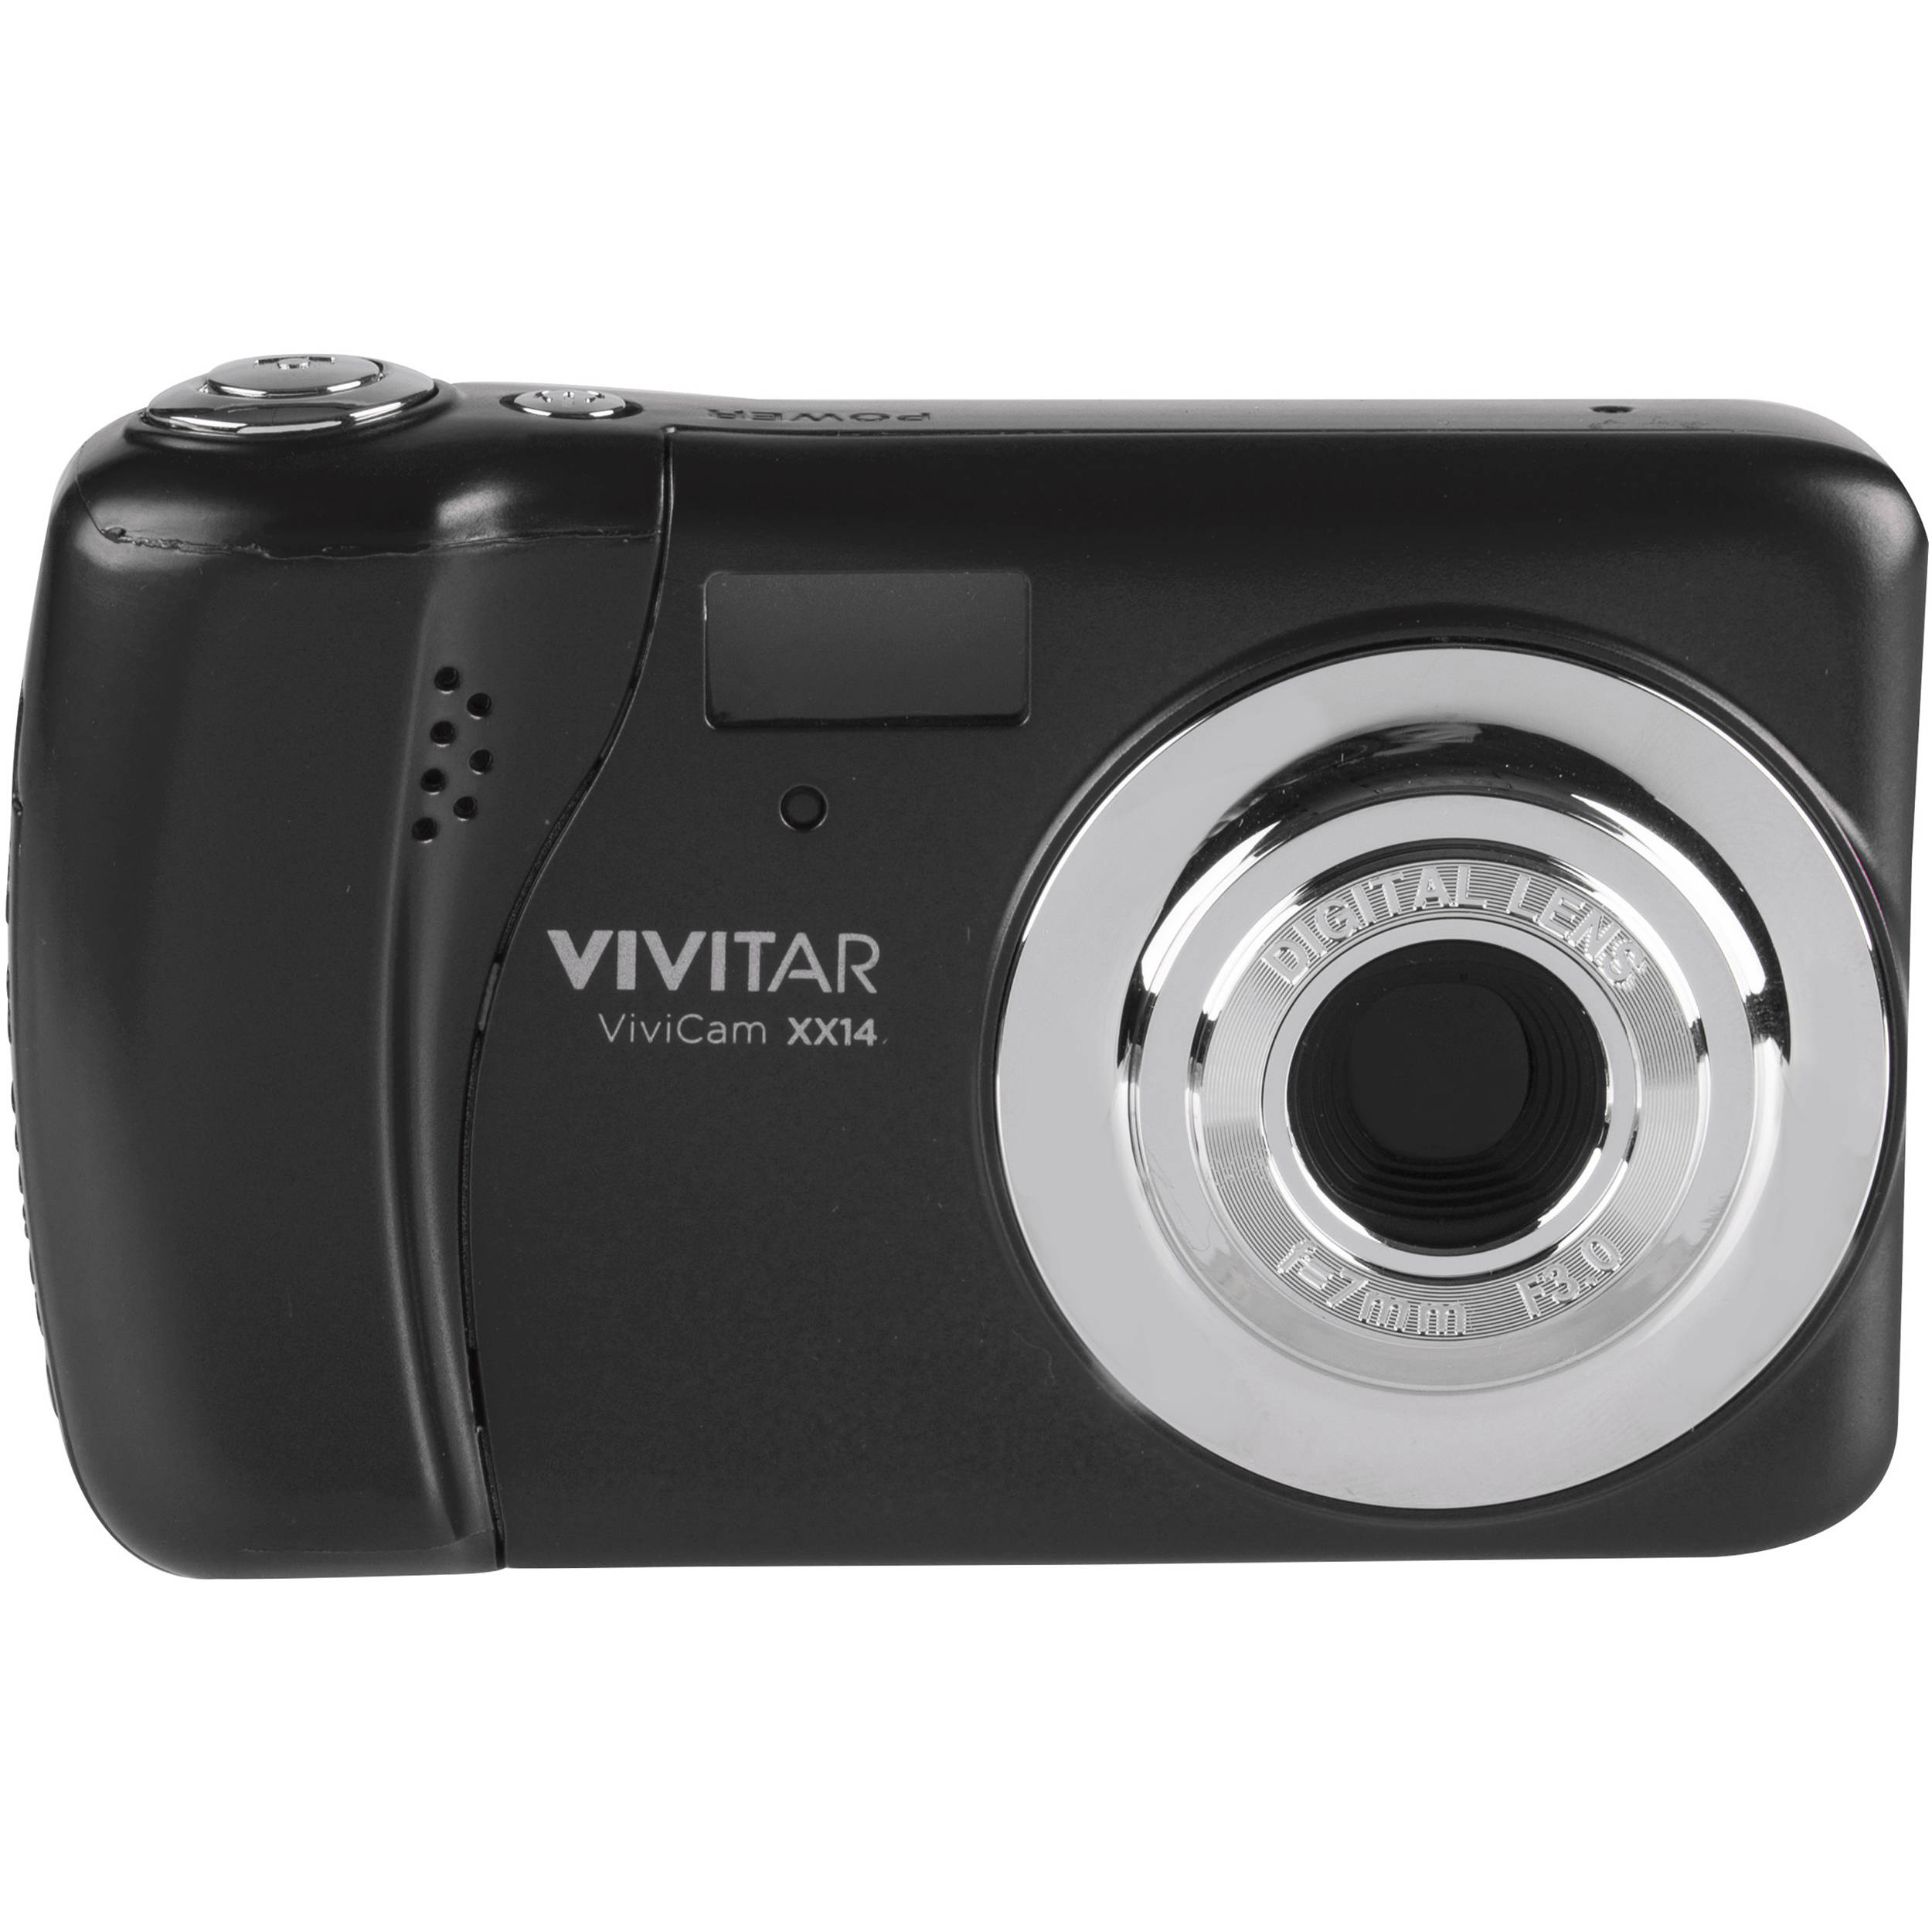 Vivitar ViviCam XX14 Digital Camera (Black) VXX14-BLK B&H Photo